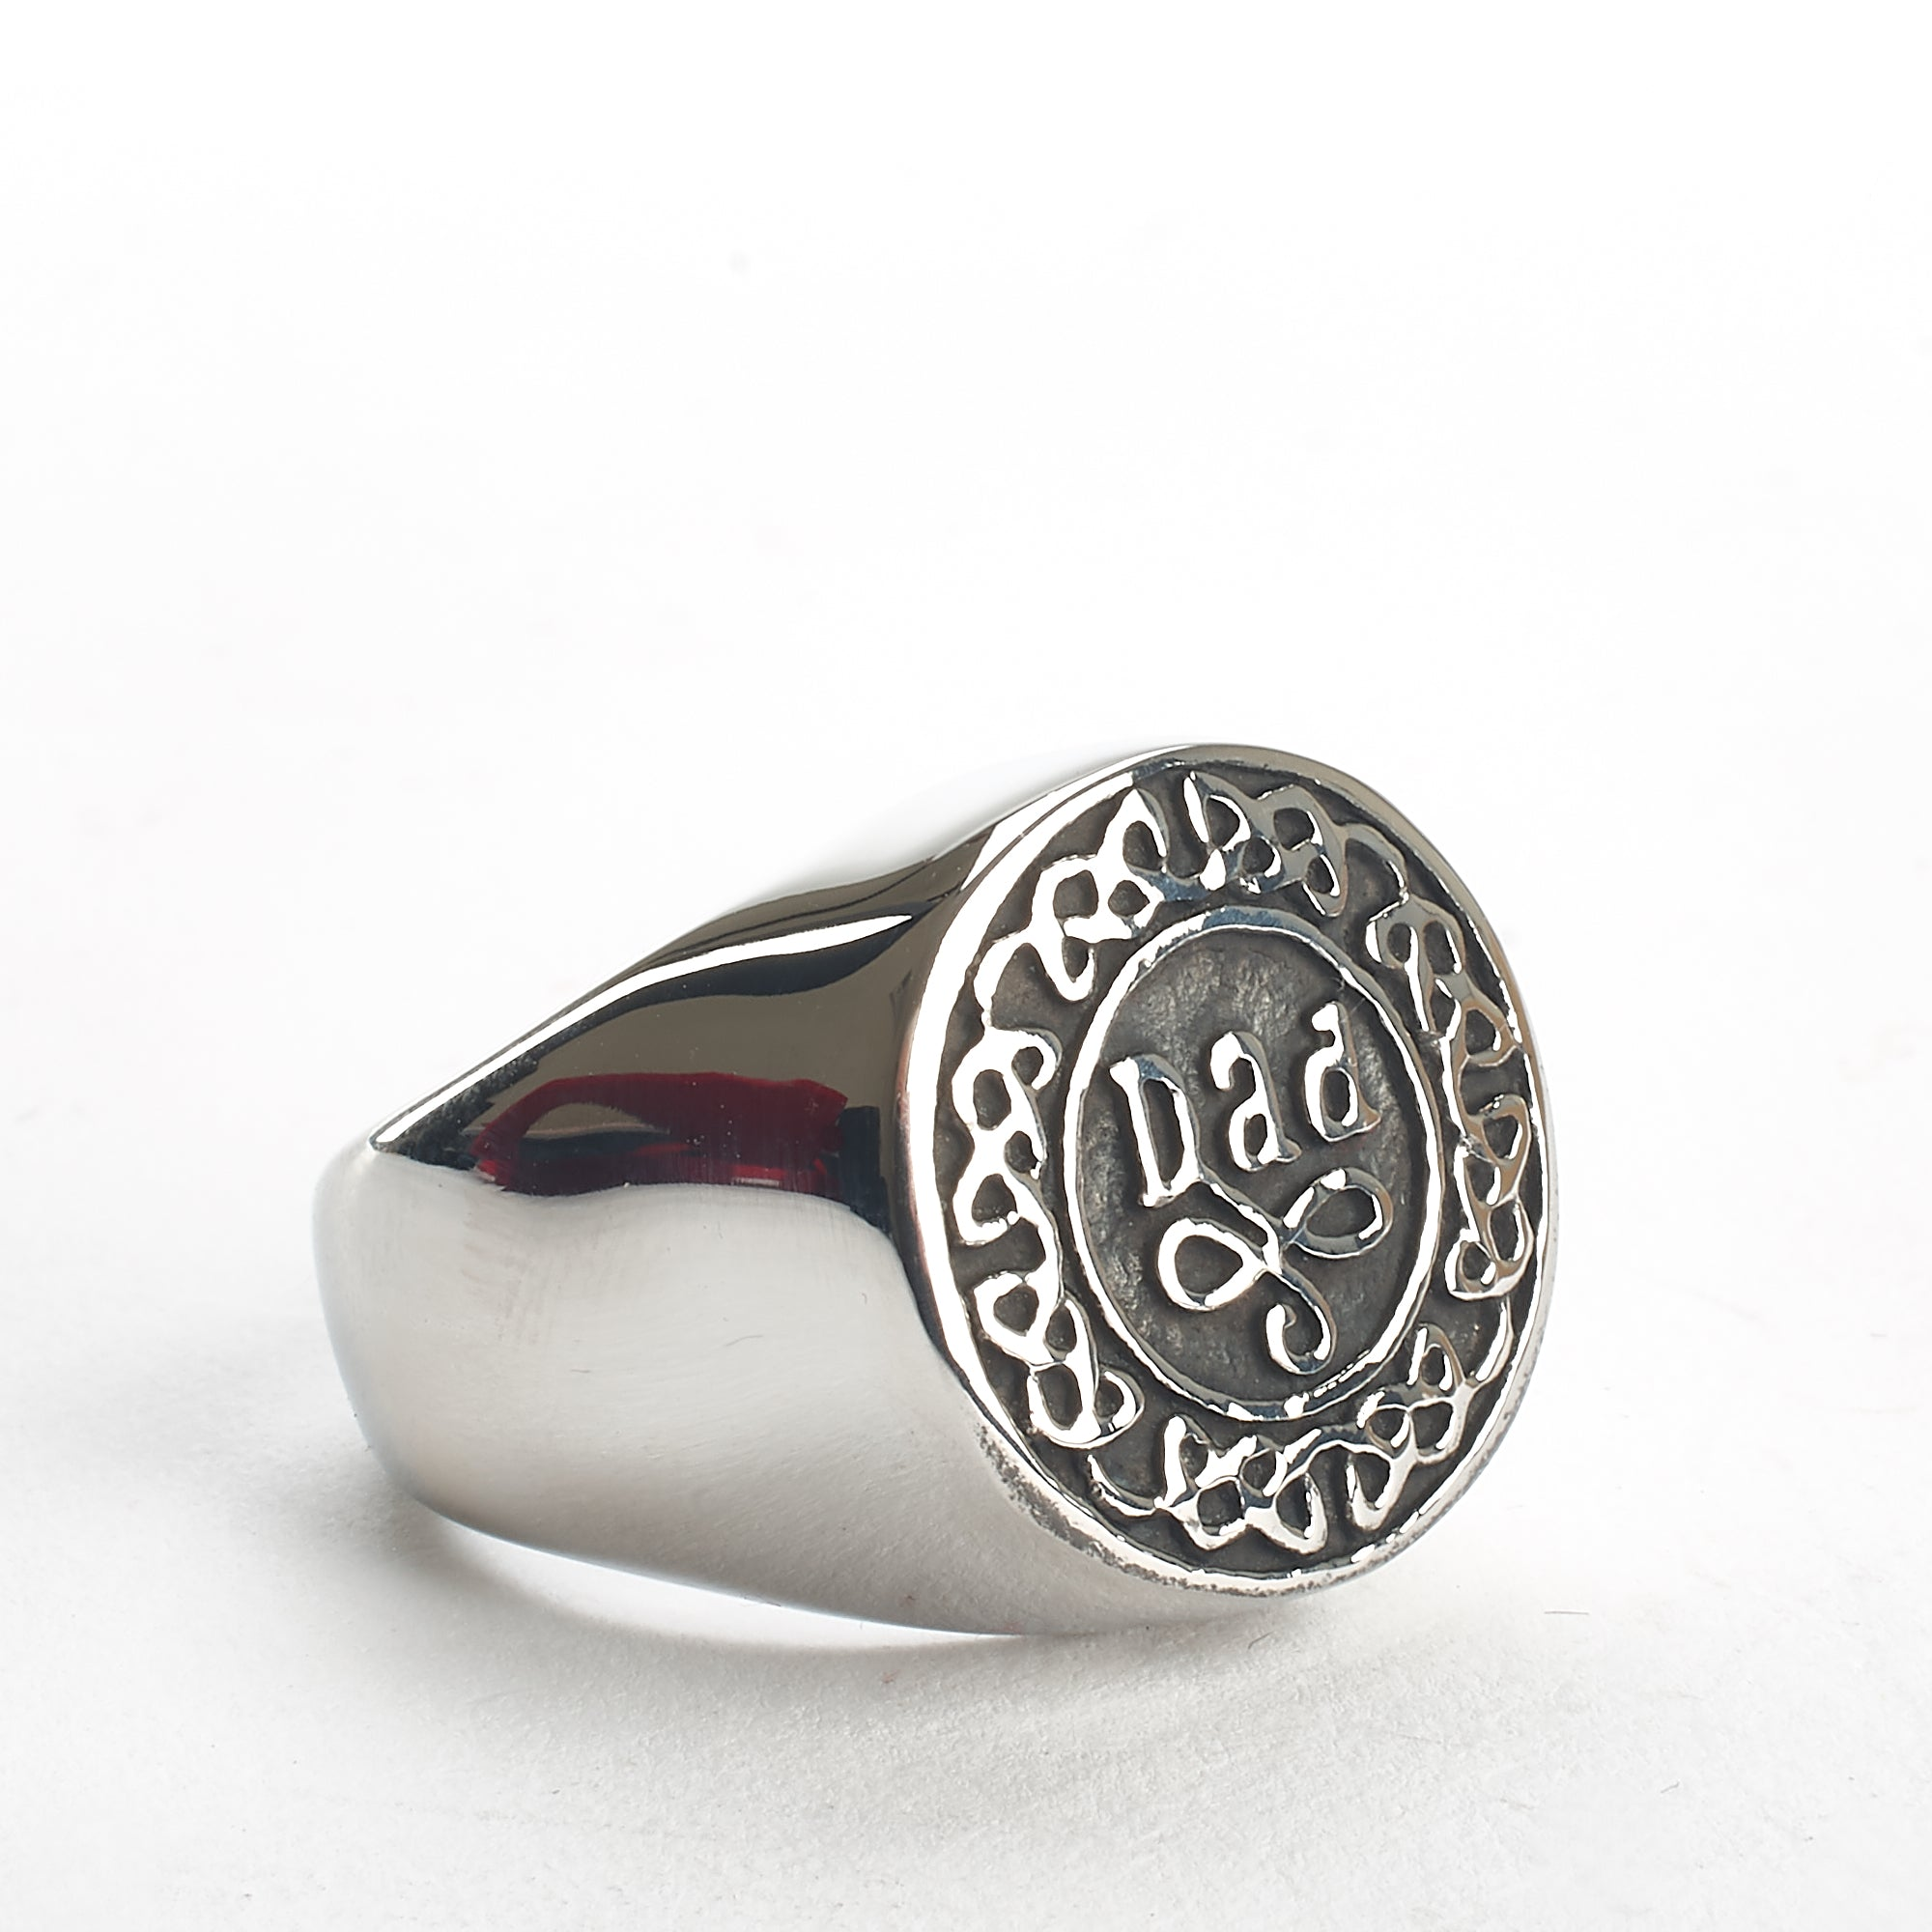 Cremation Ring - Family - Silver with Celtic Filigree - Dad